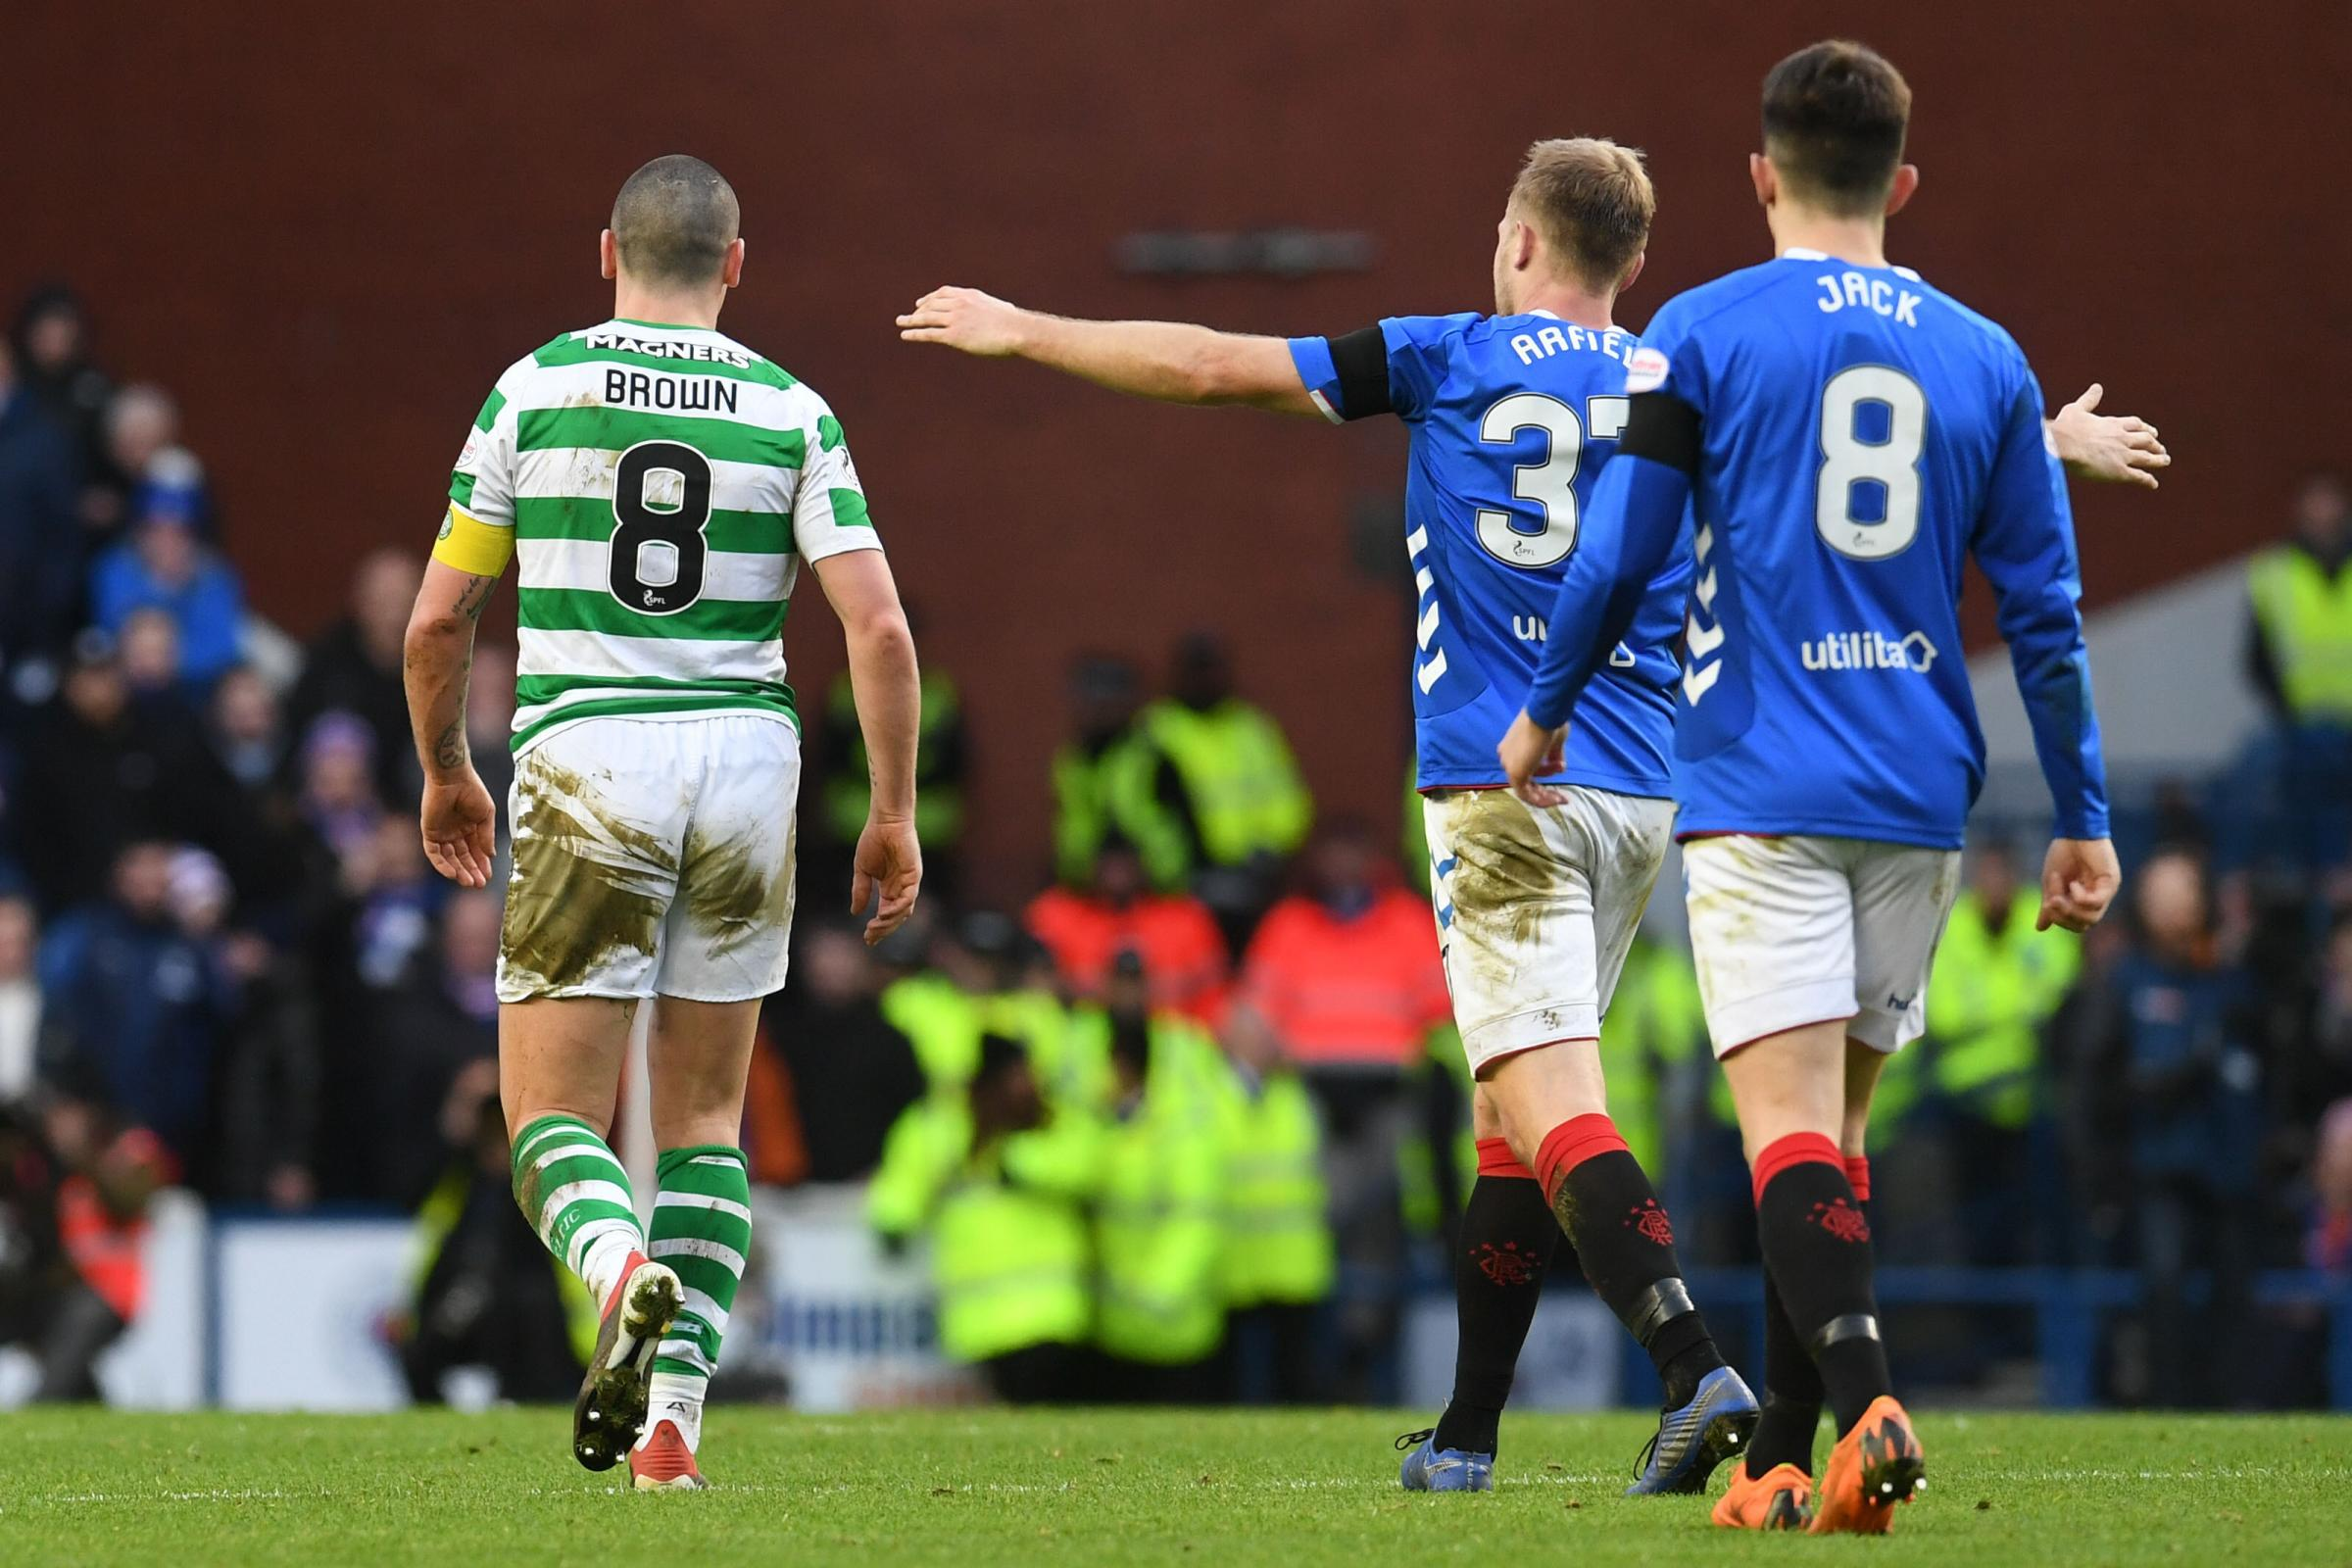 Scott Arfield on his 'Broony' celebration, his mentality and why he hasn't watched Rangers' Rangers' Old Firm win back yet